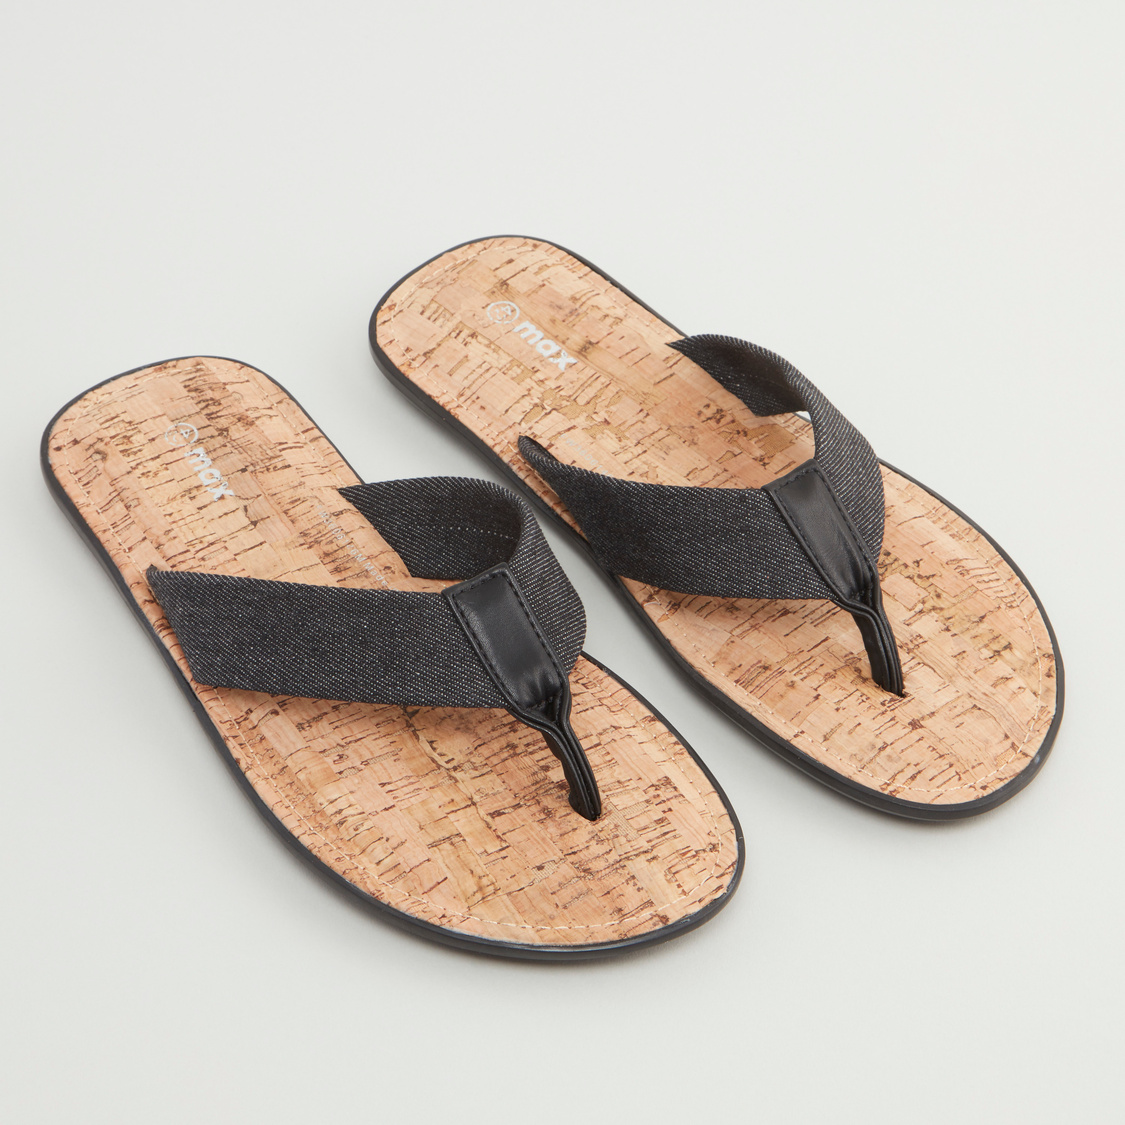 Textured Sandals with Wide Straps